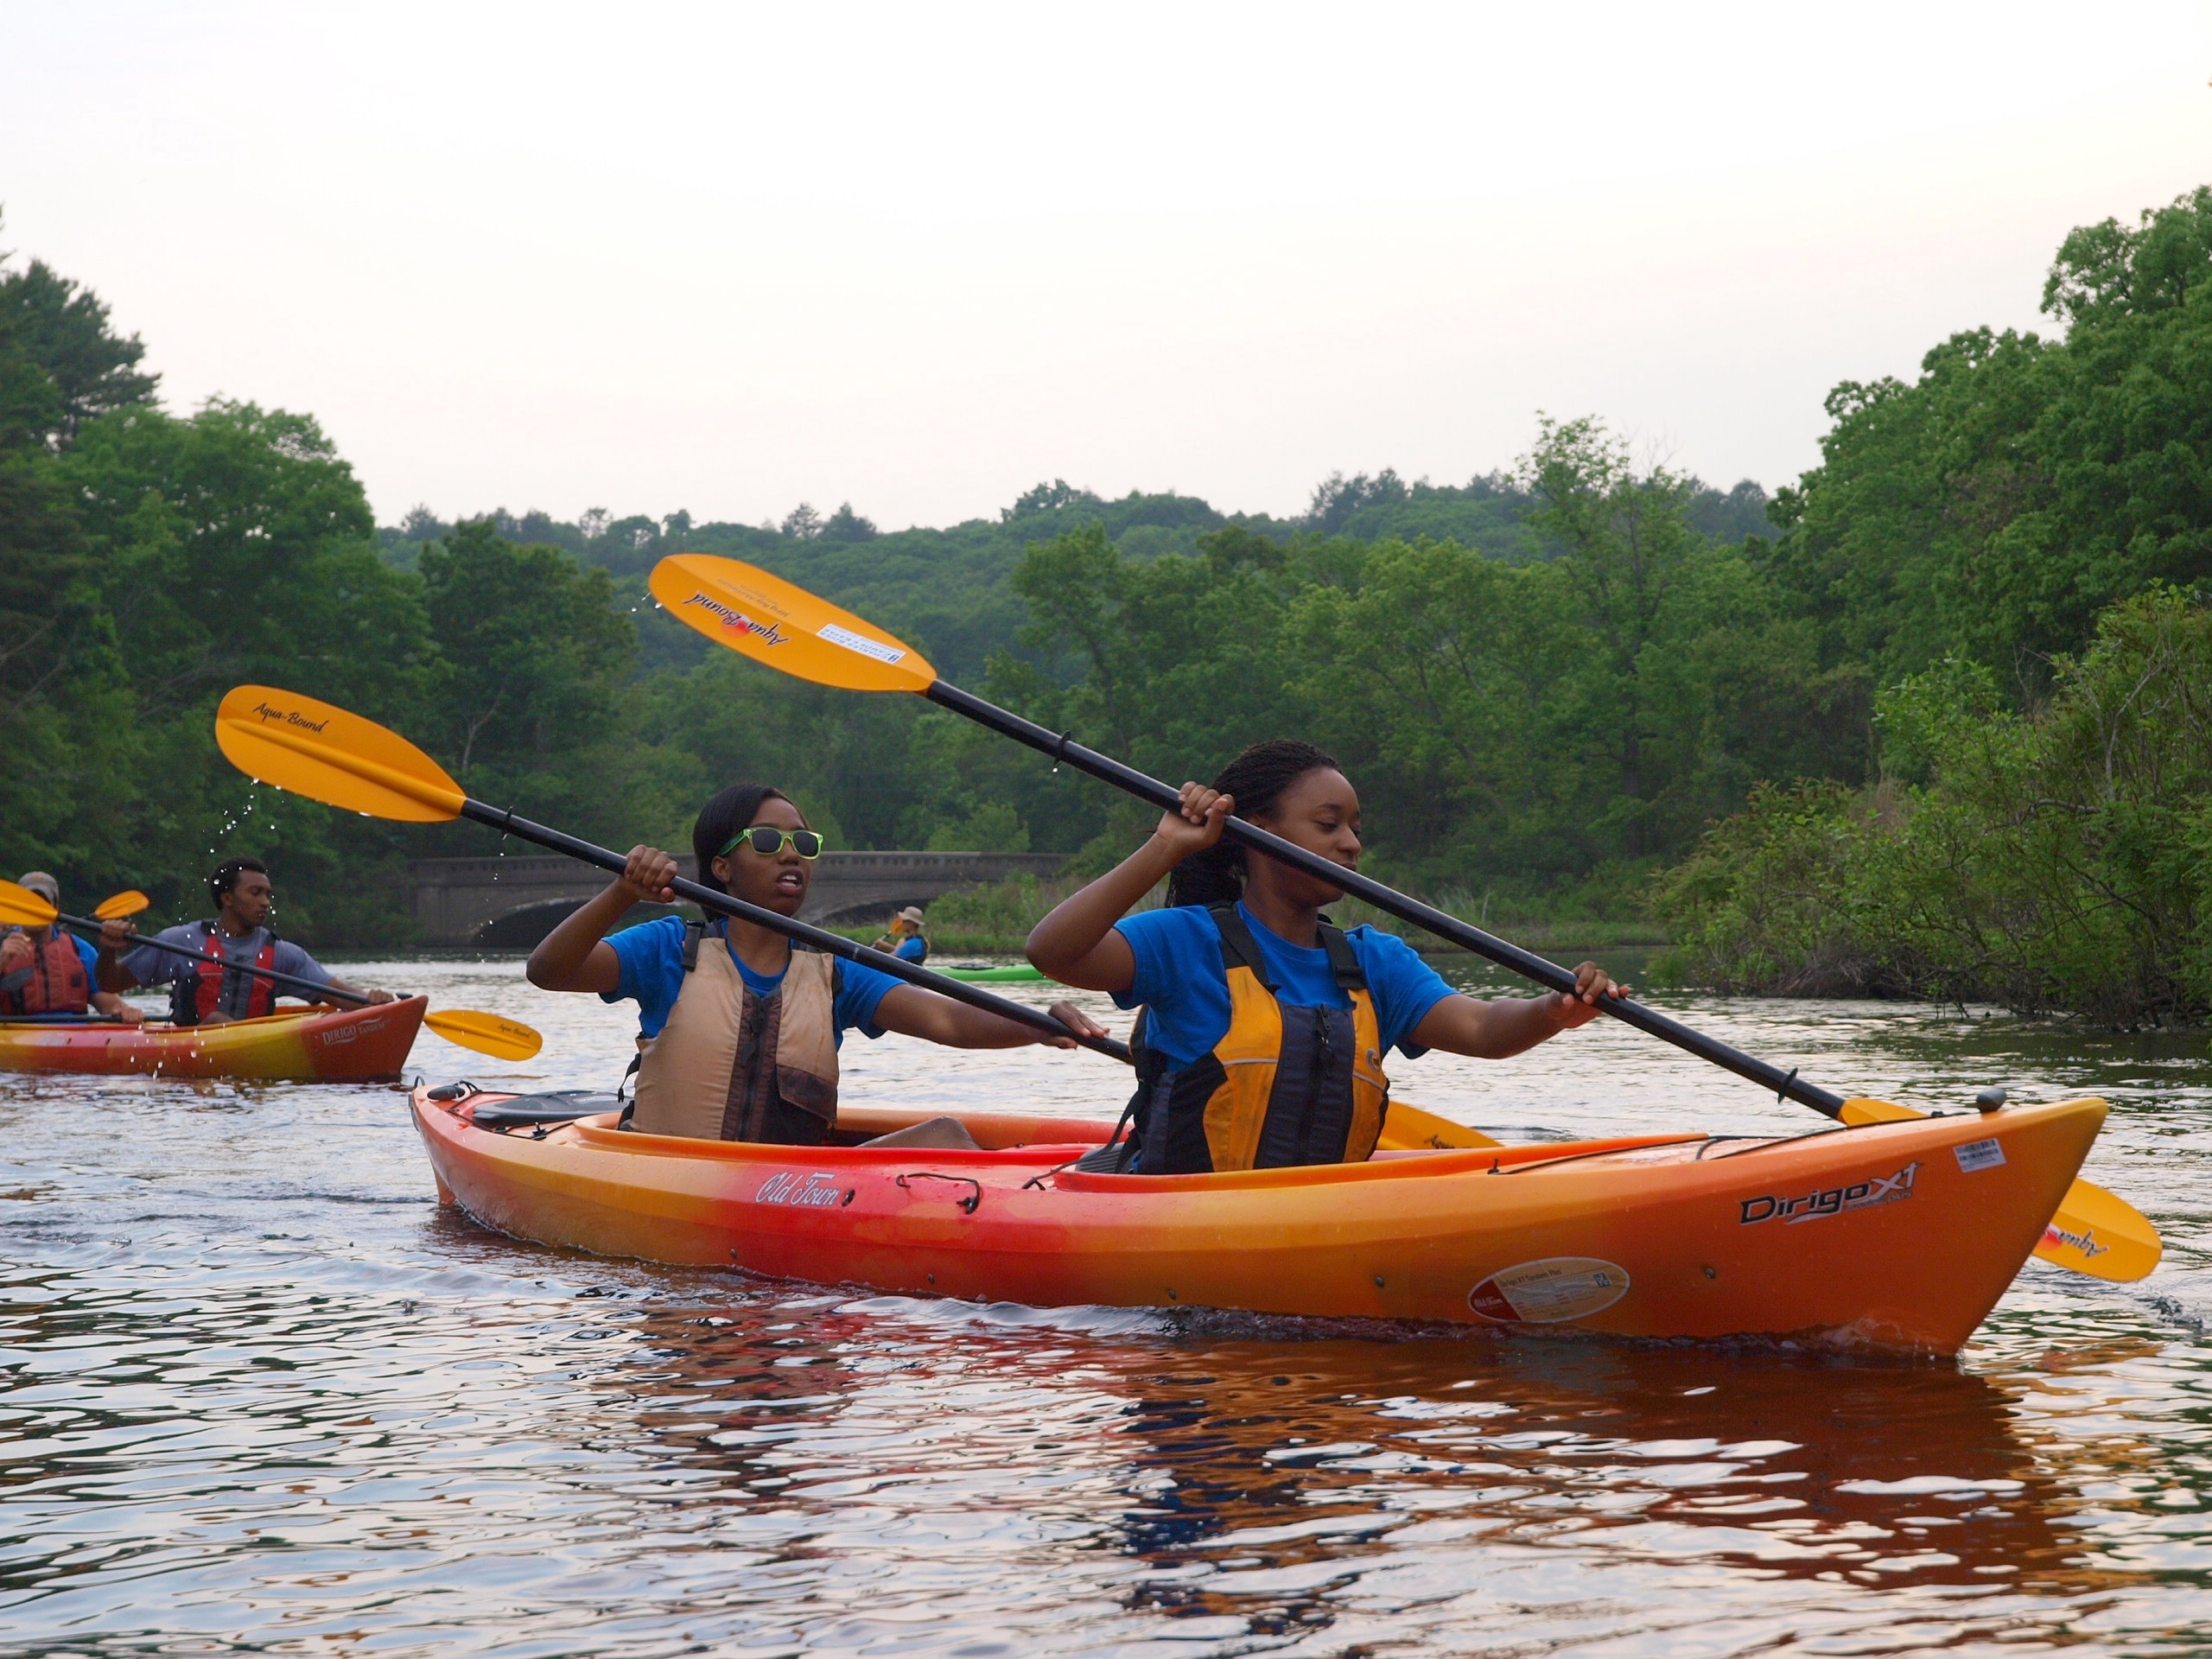 Two women wearing life vests kayak on a river.